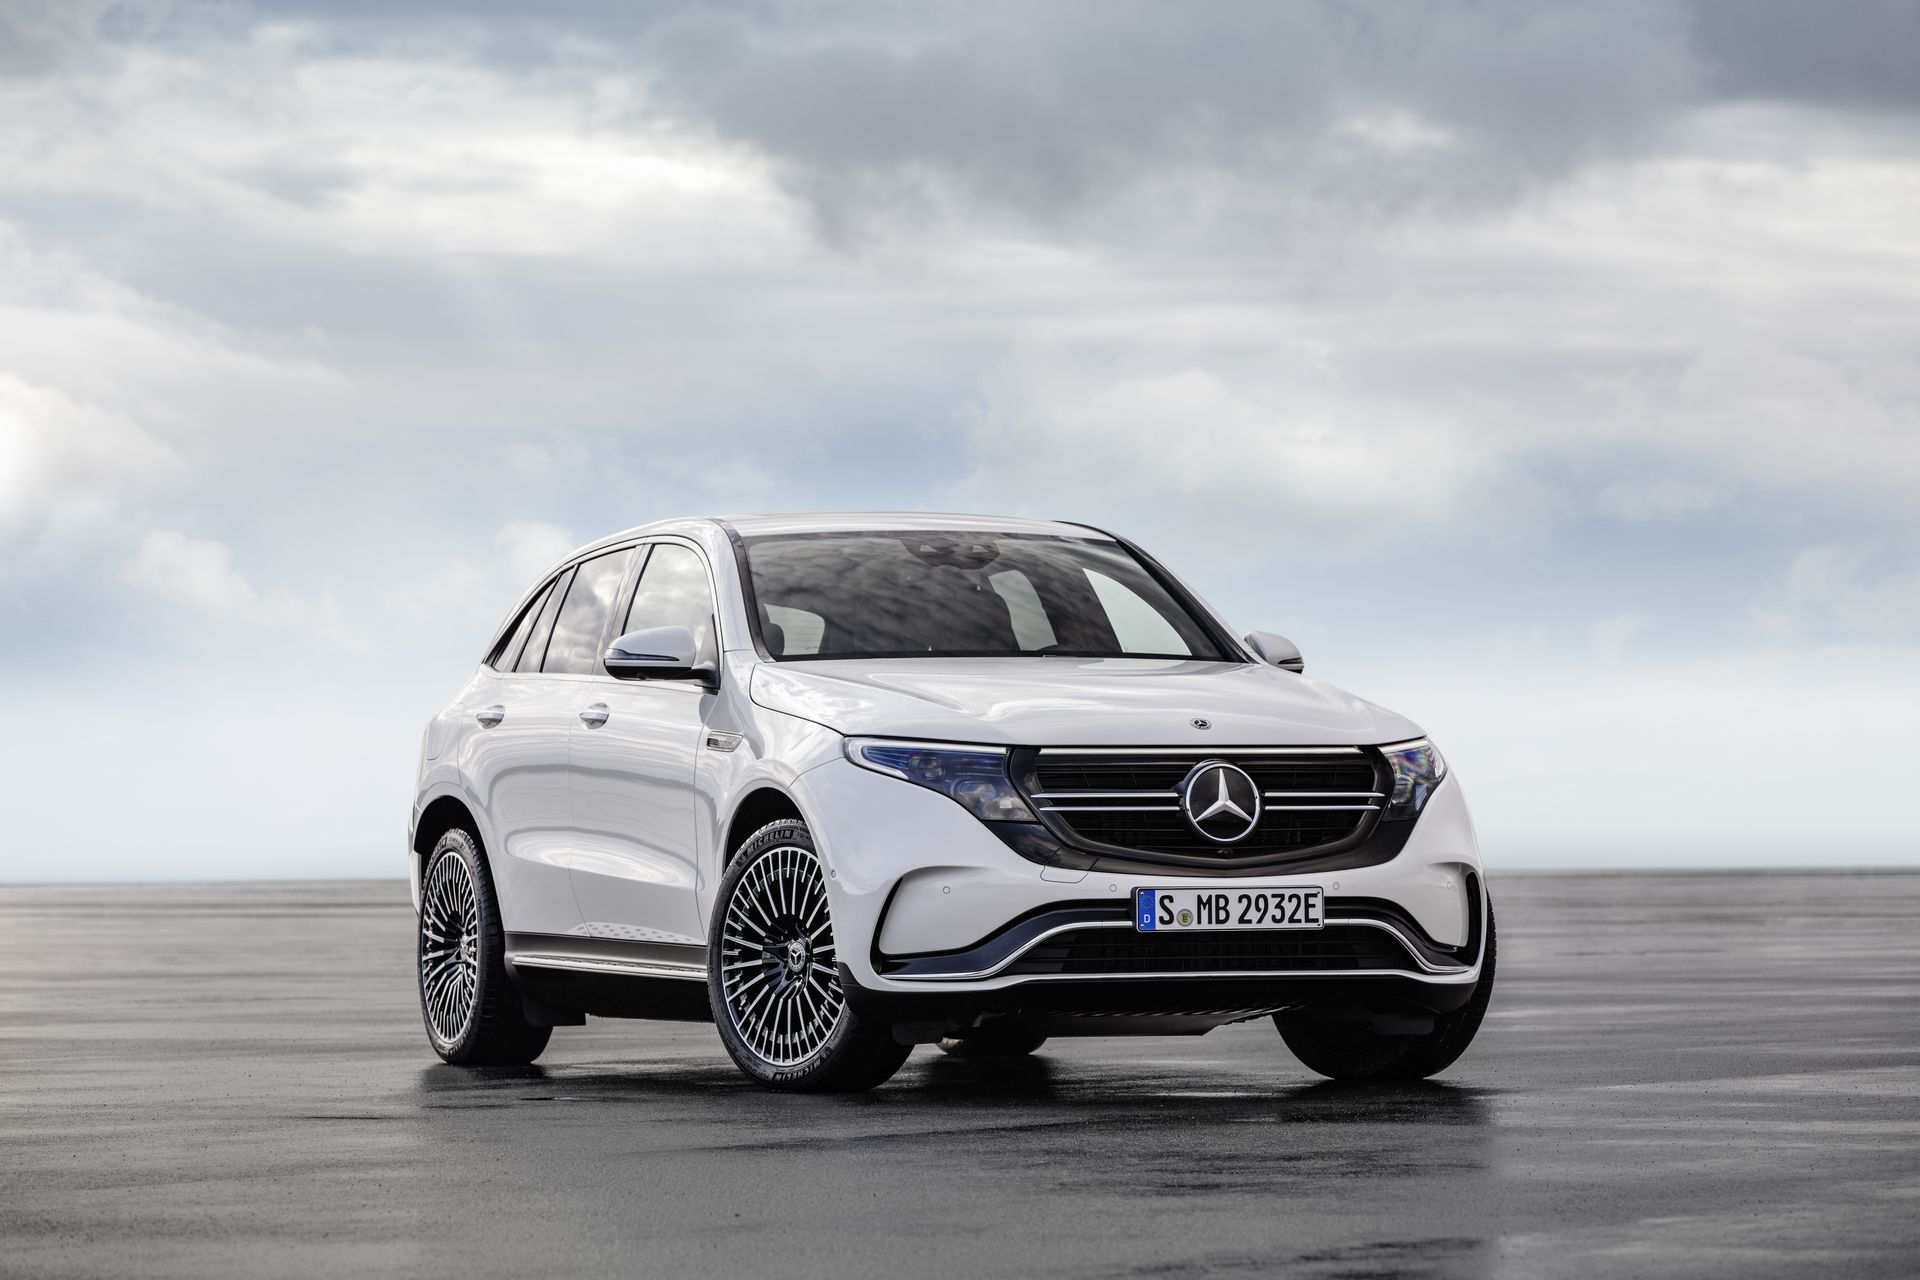 84 Great Mercedes Eqc 2020 Concept for Mercedes Eqc 2020